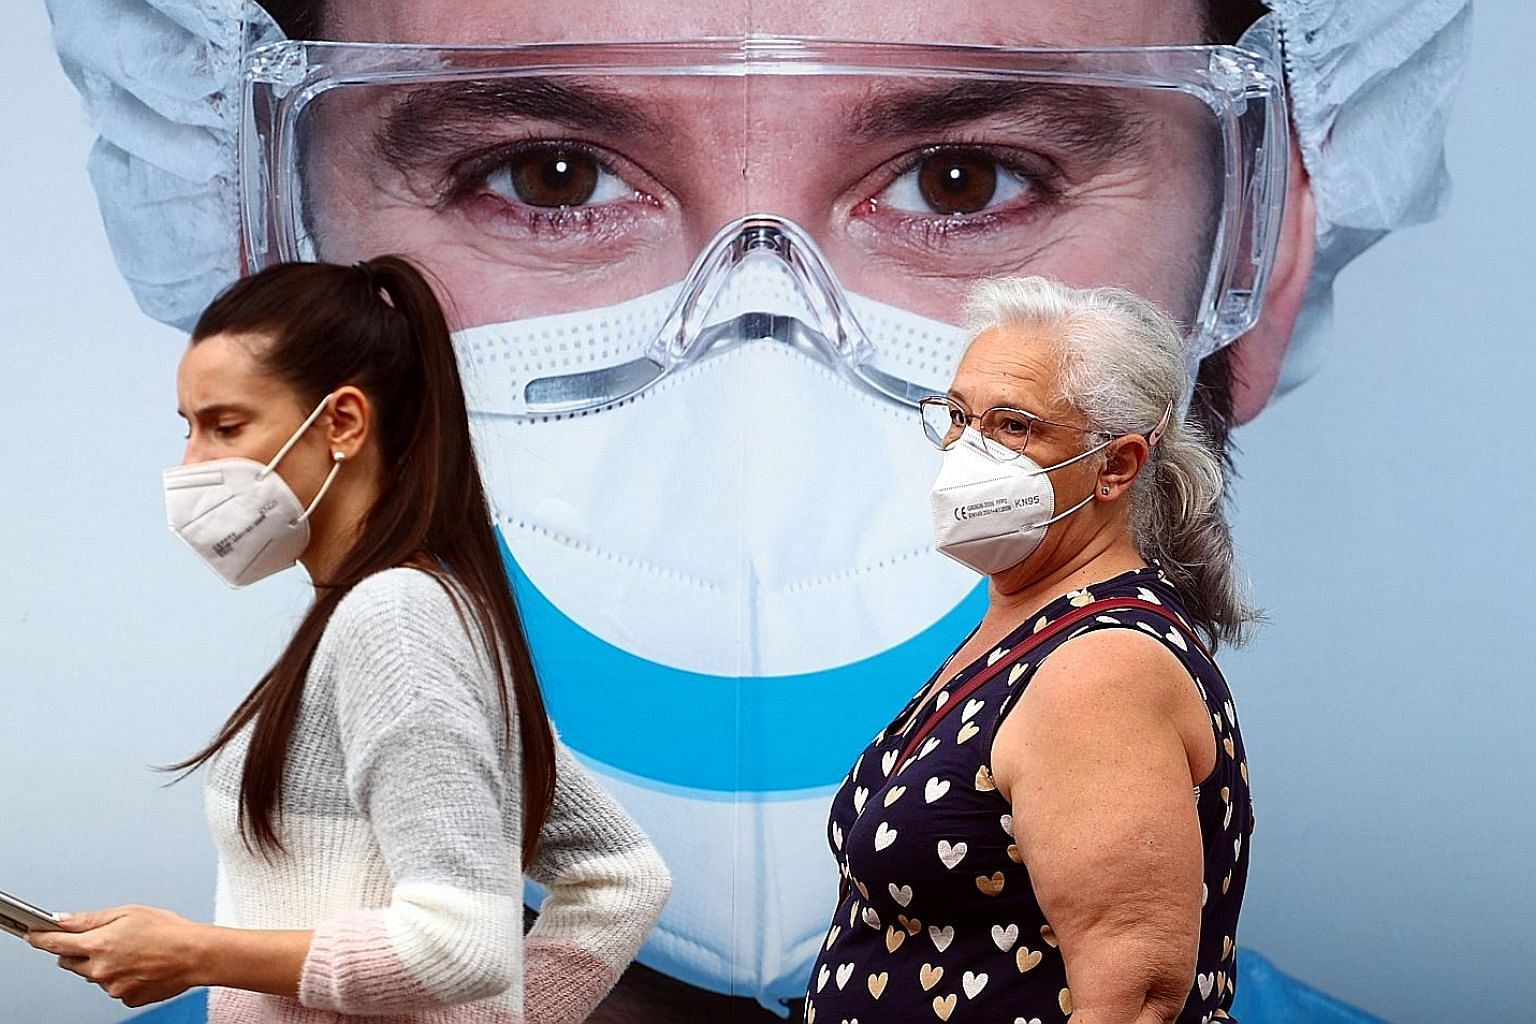 Madrid has become the epicentre of the Spanish outbreak, which has seen more than 640,000 people diagnosed with Covid-19.